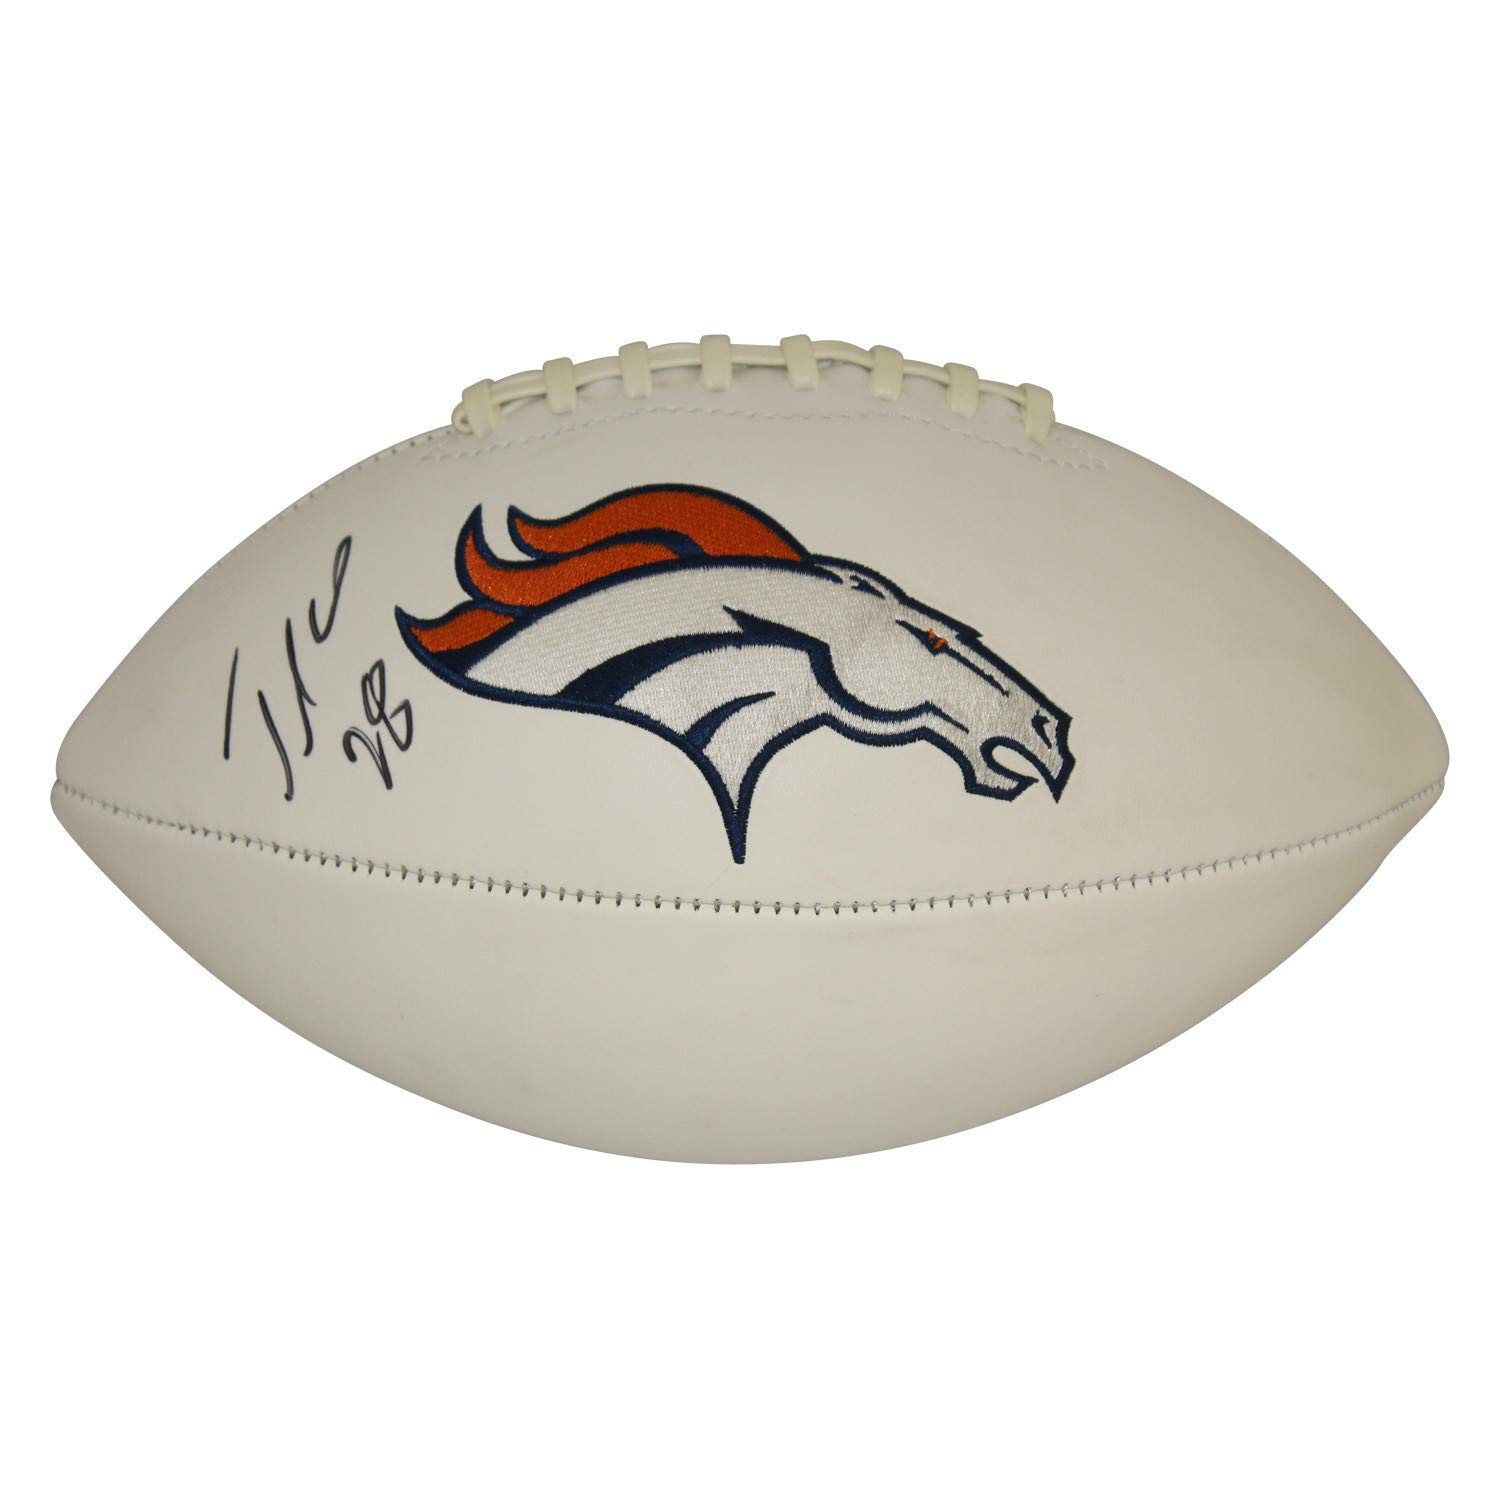 Jamaal Charles Autographed Signed Denver Broncos White Panel Football - Certified Authentic